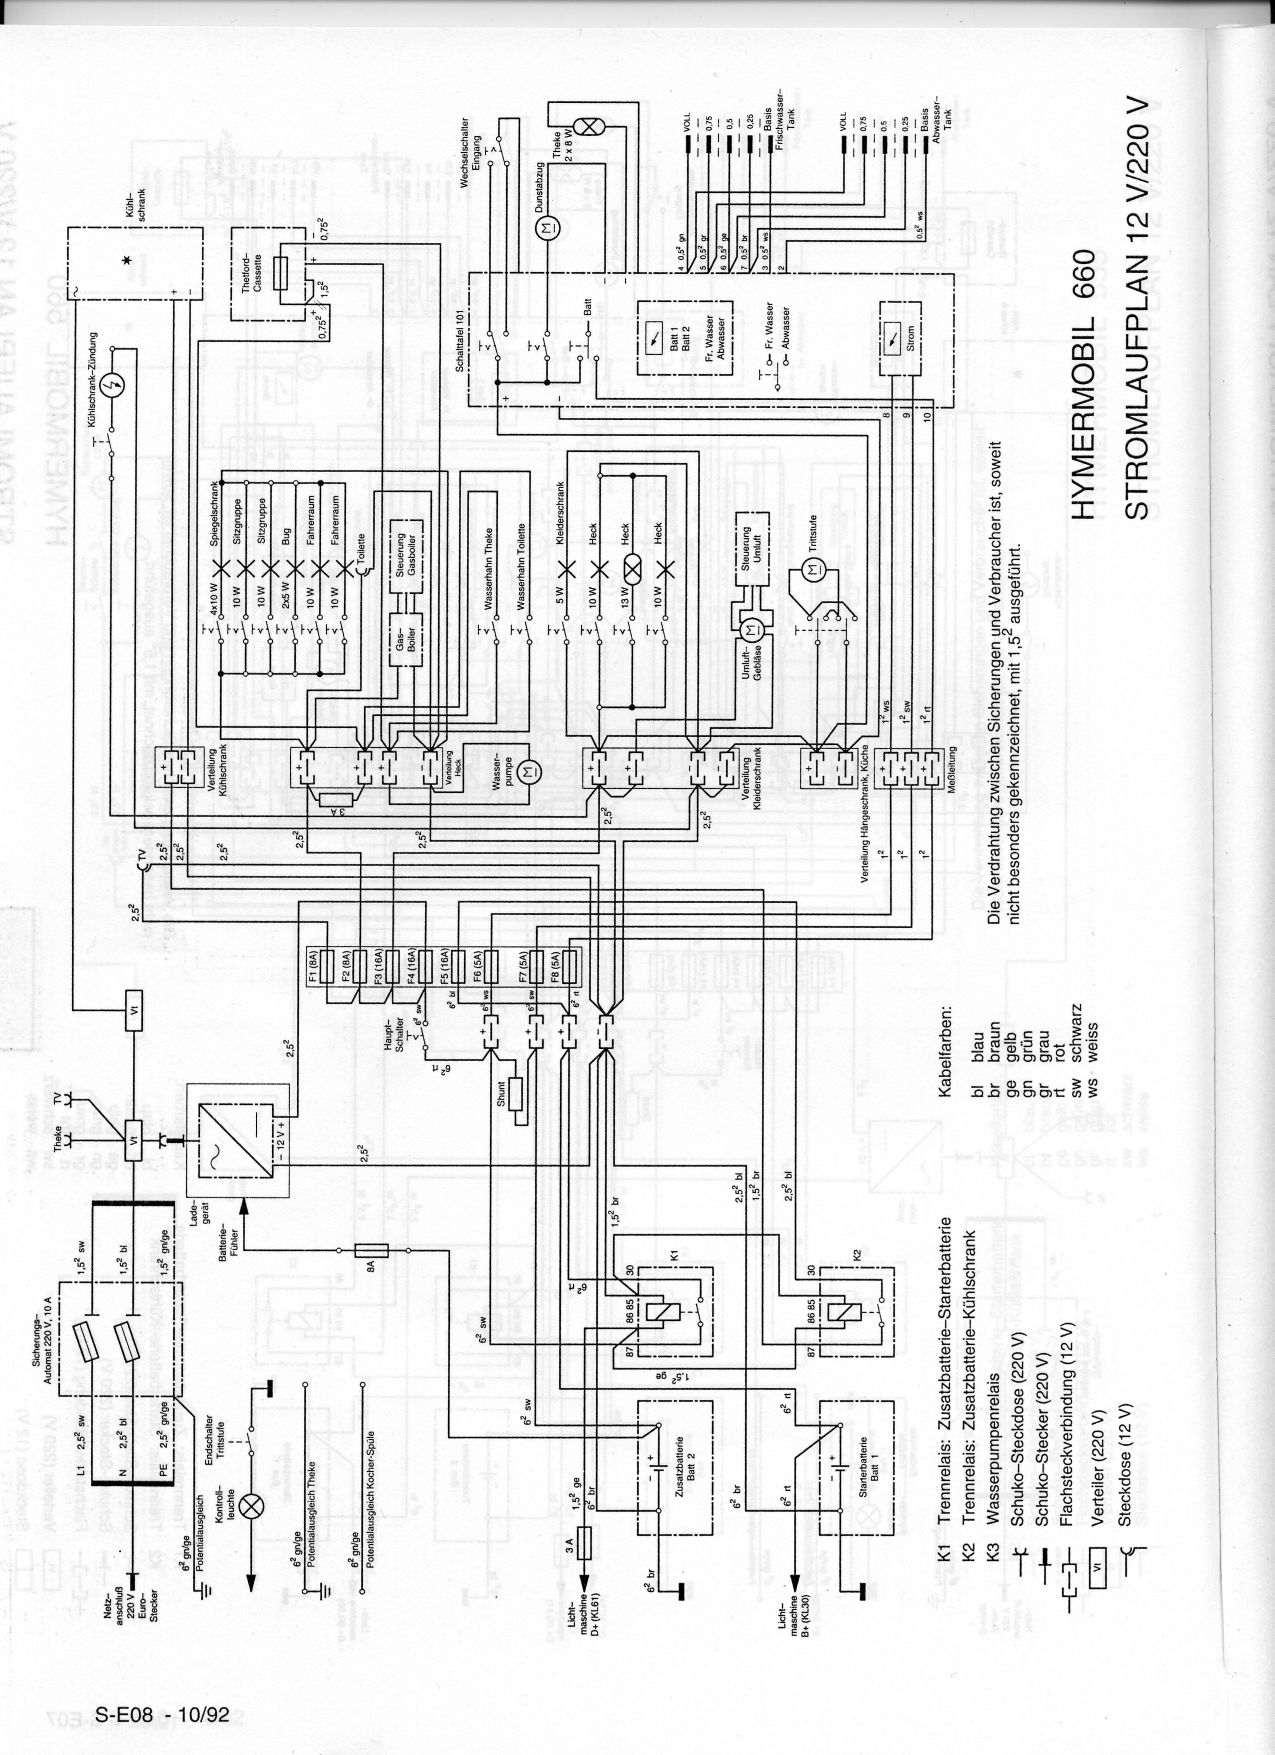 tags: #01 arctic cat 250 wiring diagram#arctic cat 500 wiring diagram#arctic  cat wiring schematic#king quad wiring diagram#arctic cat wildcat 650 wiring